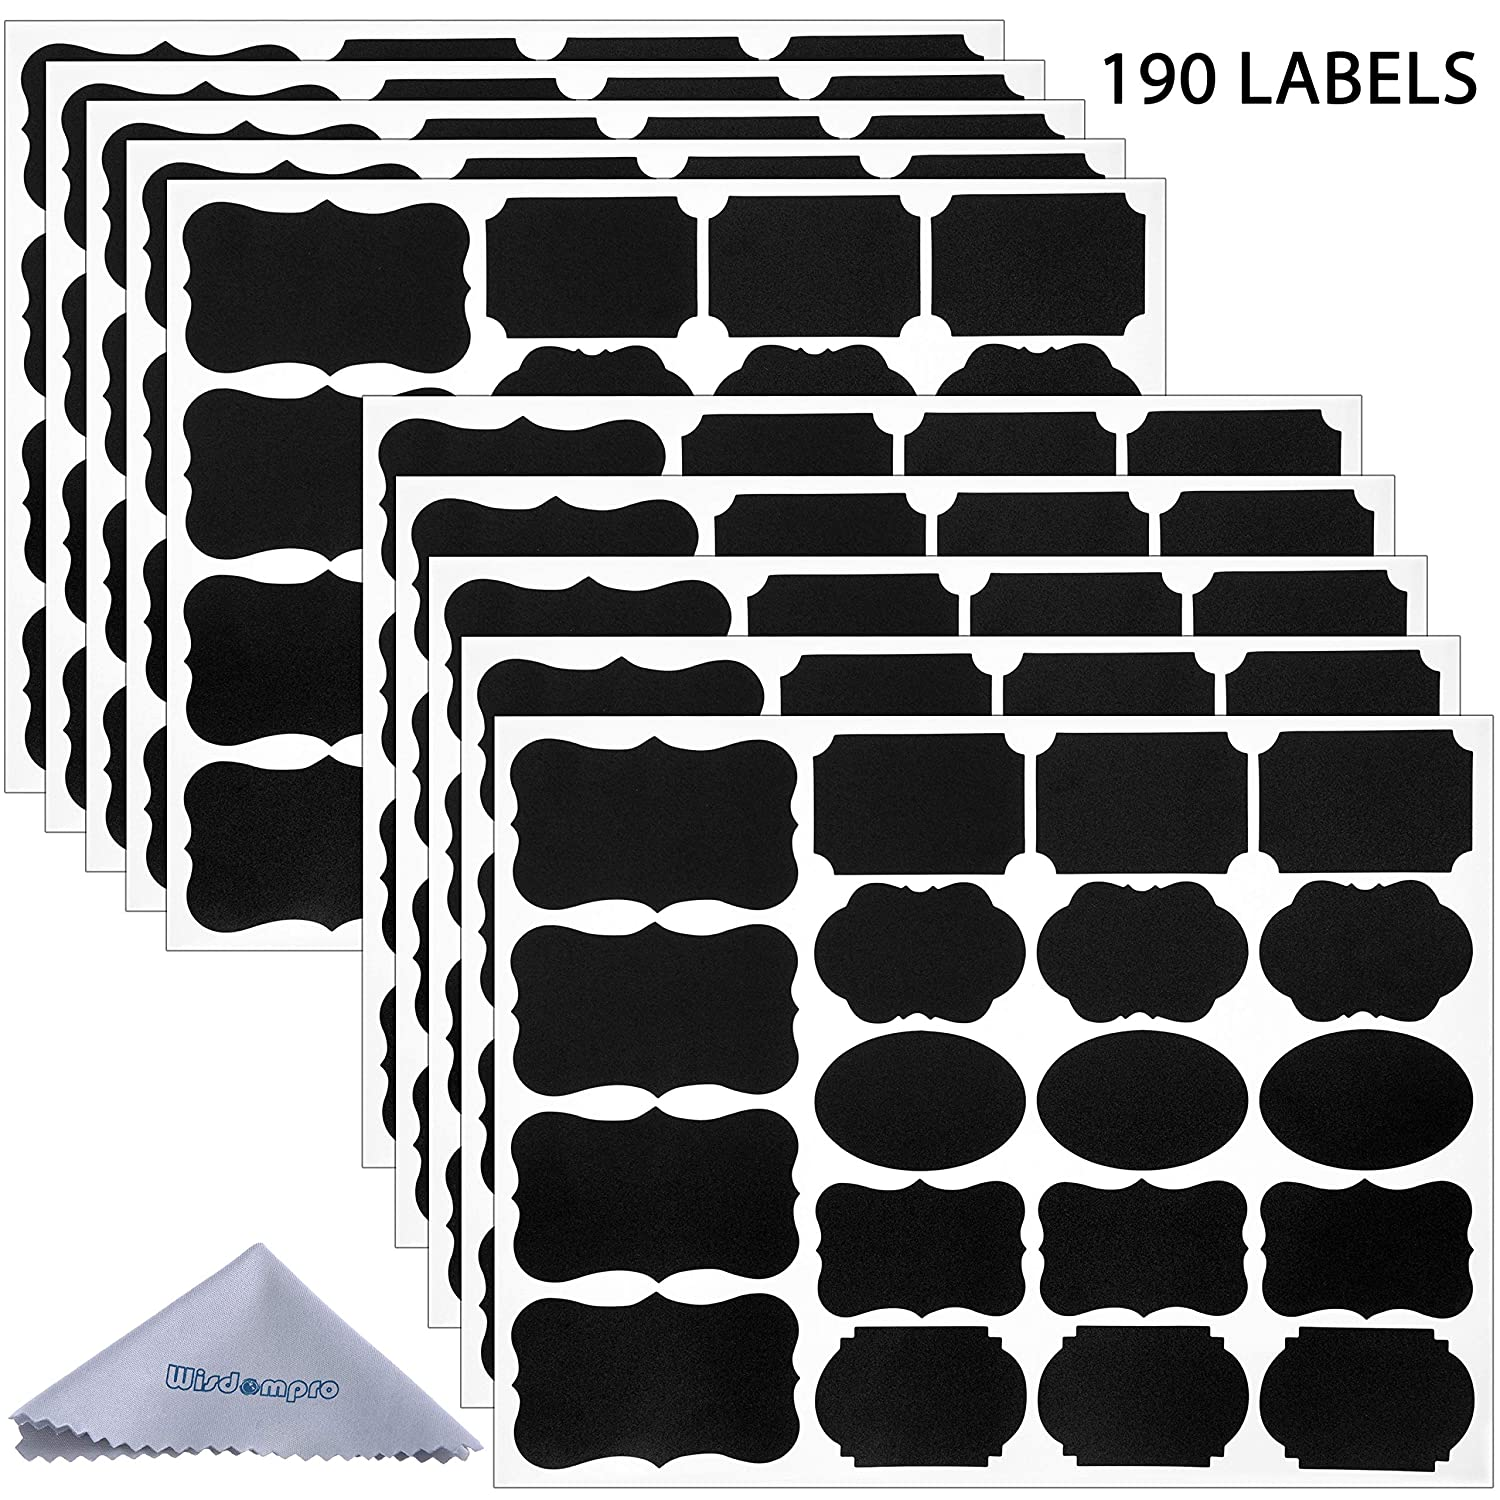 Wisdompro Chalk Board Labels Stickers for Food Jars, Spice, Glass, Cups, Bottles, Containers and Canisters, Decorative Reusable Waterproof Blackboard Labels - 10 Sheet (190Pcs)